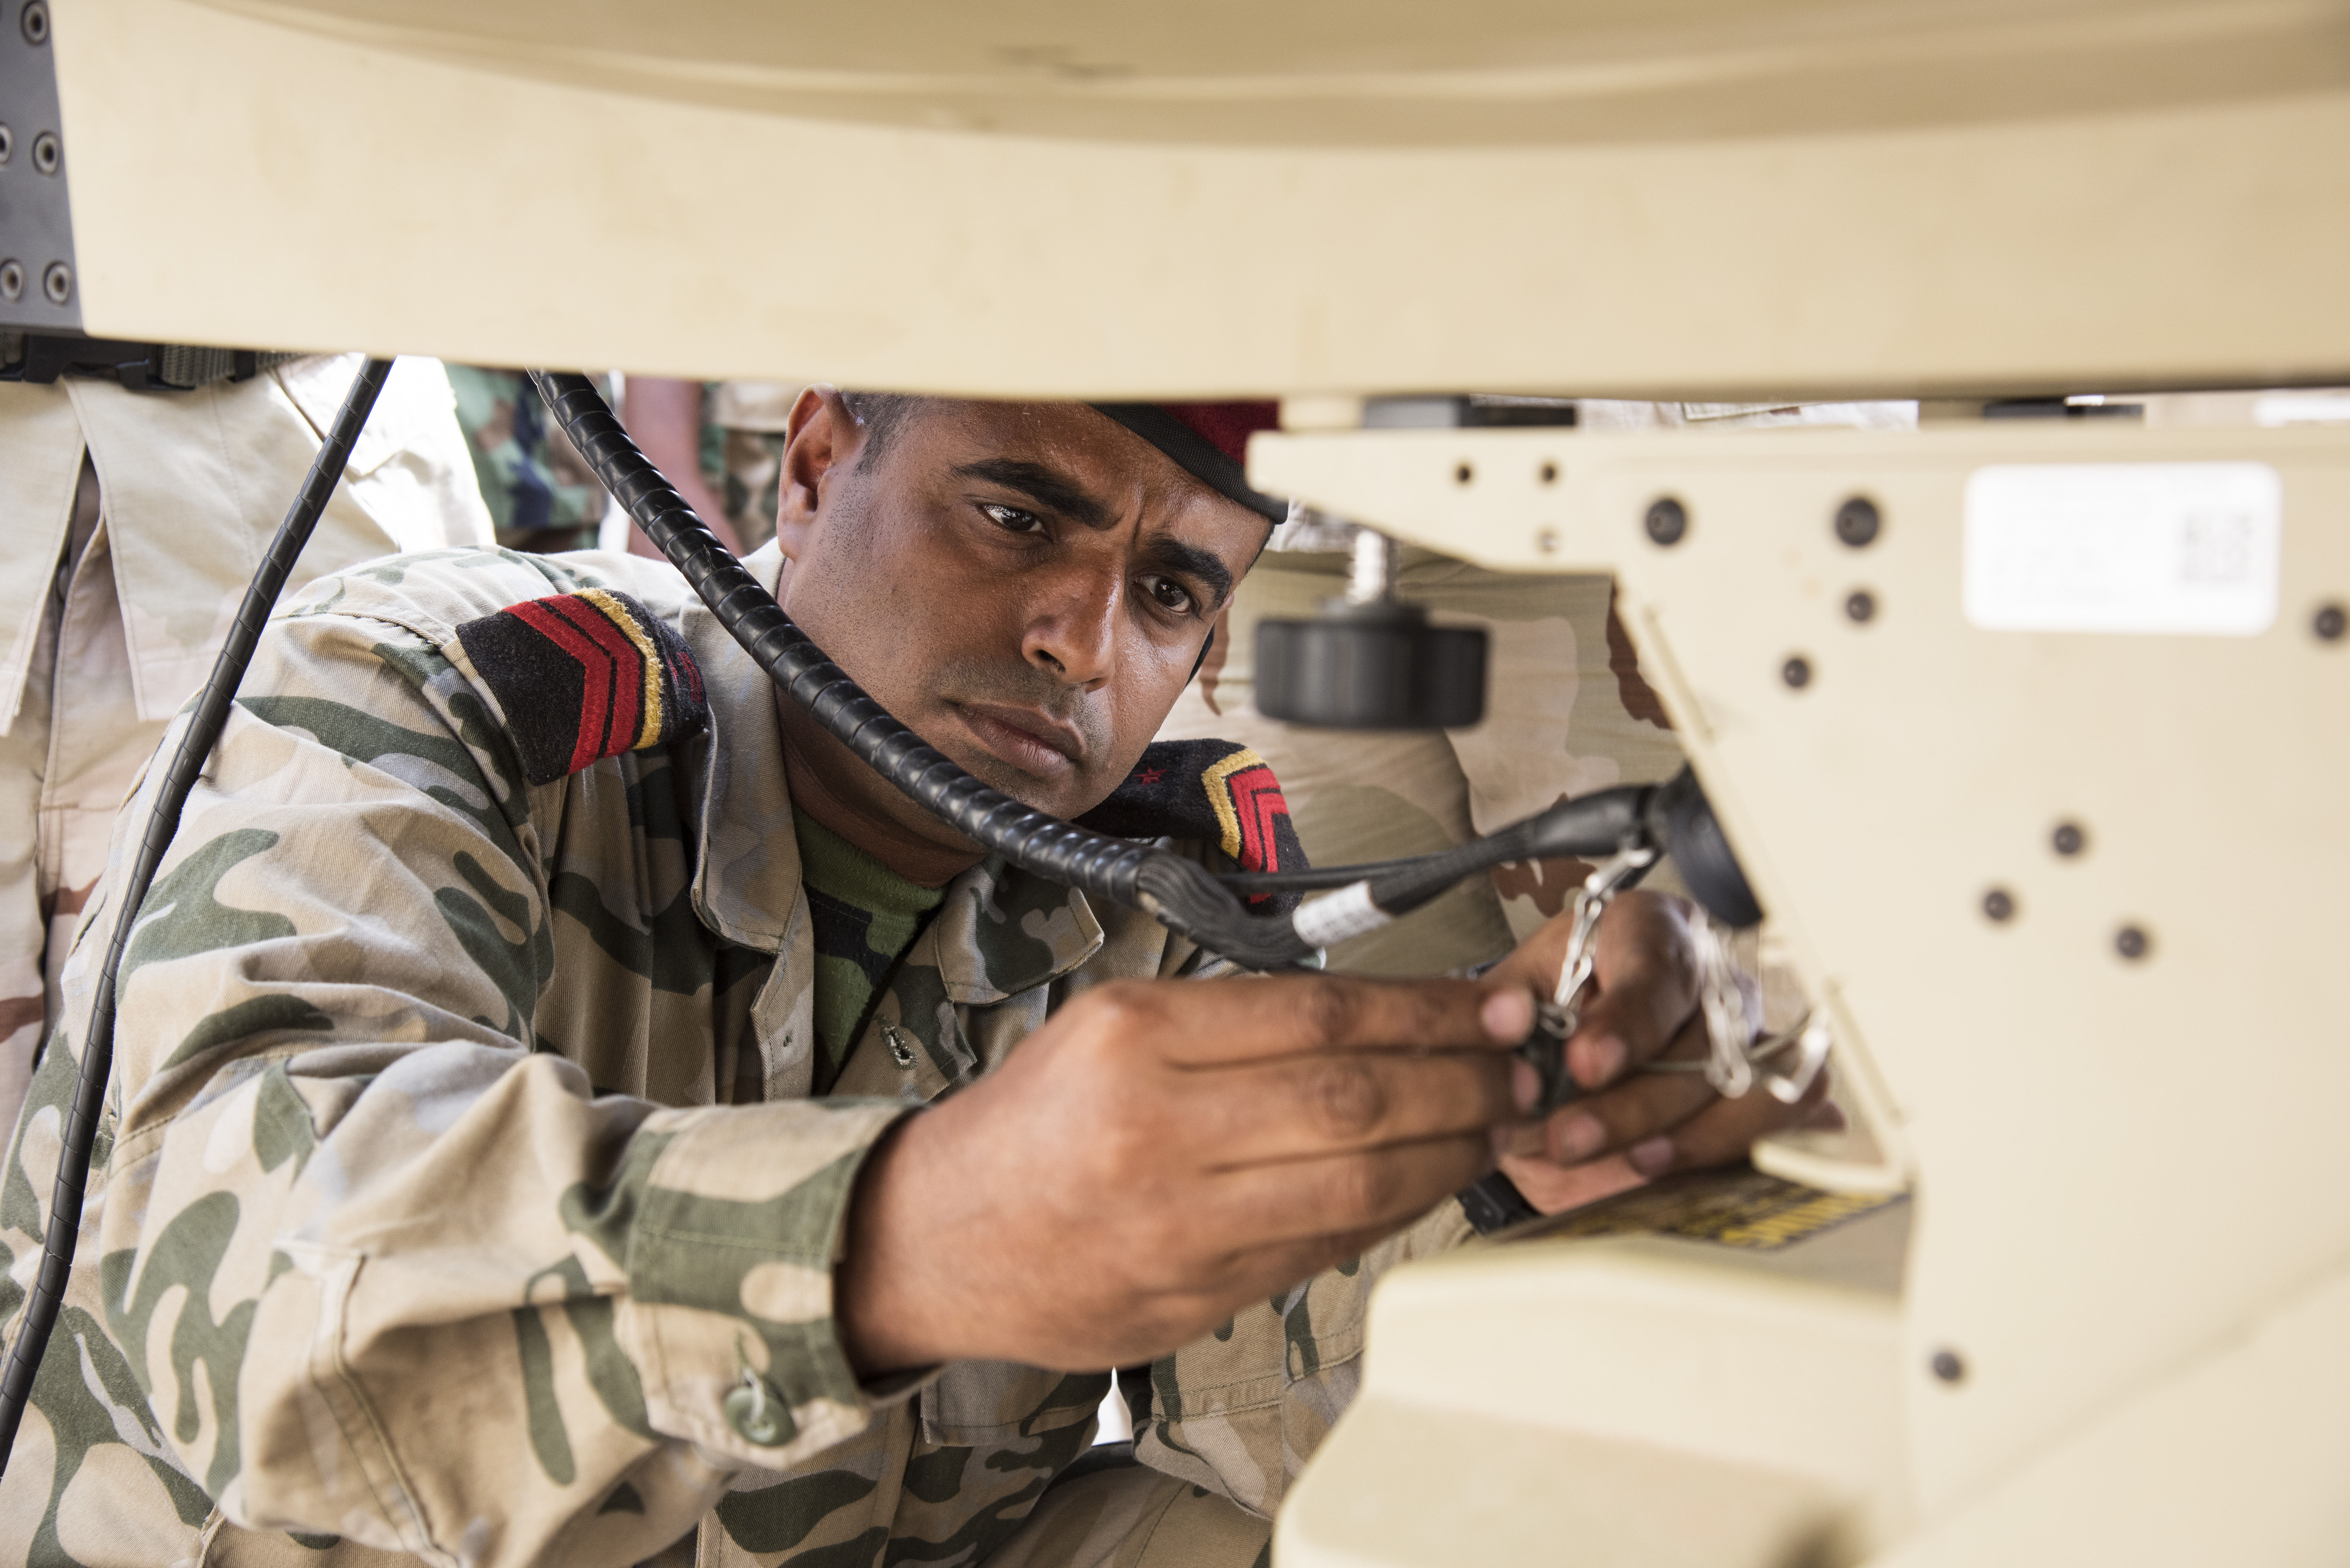 A member of the Djibouti Armed Forces (FAD) connects a cable connector during the setup of a U.S. Africa Command Data Sharing Network (ADSN) terminal at Camp Lemonnier, Djibouti, Aug. 31, 2015. FAD personnel were tested on how quickly they could setup and tear down the field communication system as part of a multi-week ADSN course, which was hosted by Combined Joint Task Force-Horn of Africa communications and intelligence personnel, and was designed to broaden communication interoperability between host nation security forces. (U.S. Air Force photo by Staff Sgt. Nathan Maysonet/released)